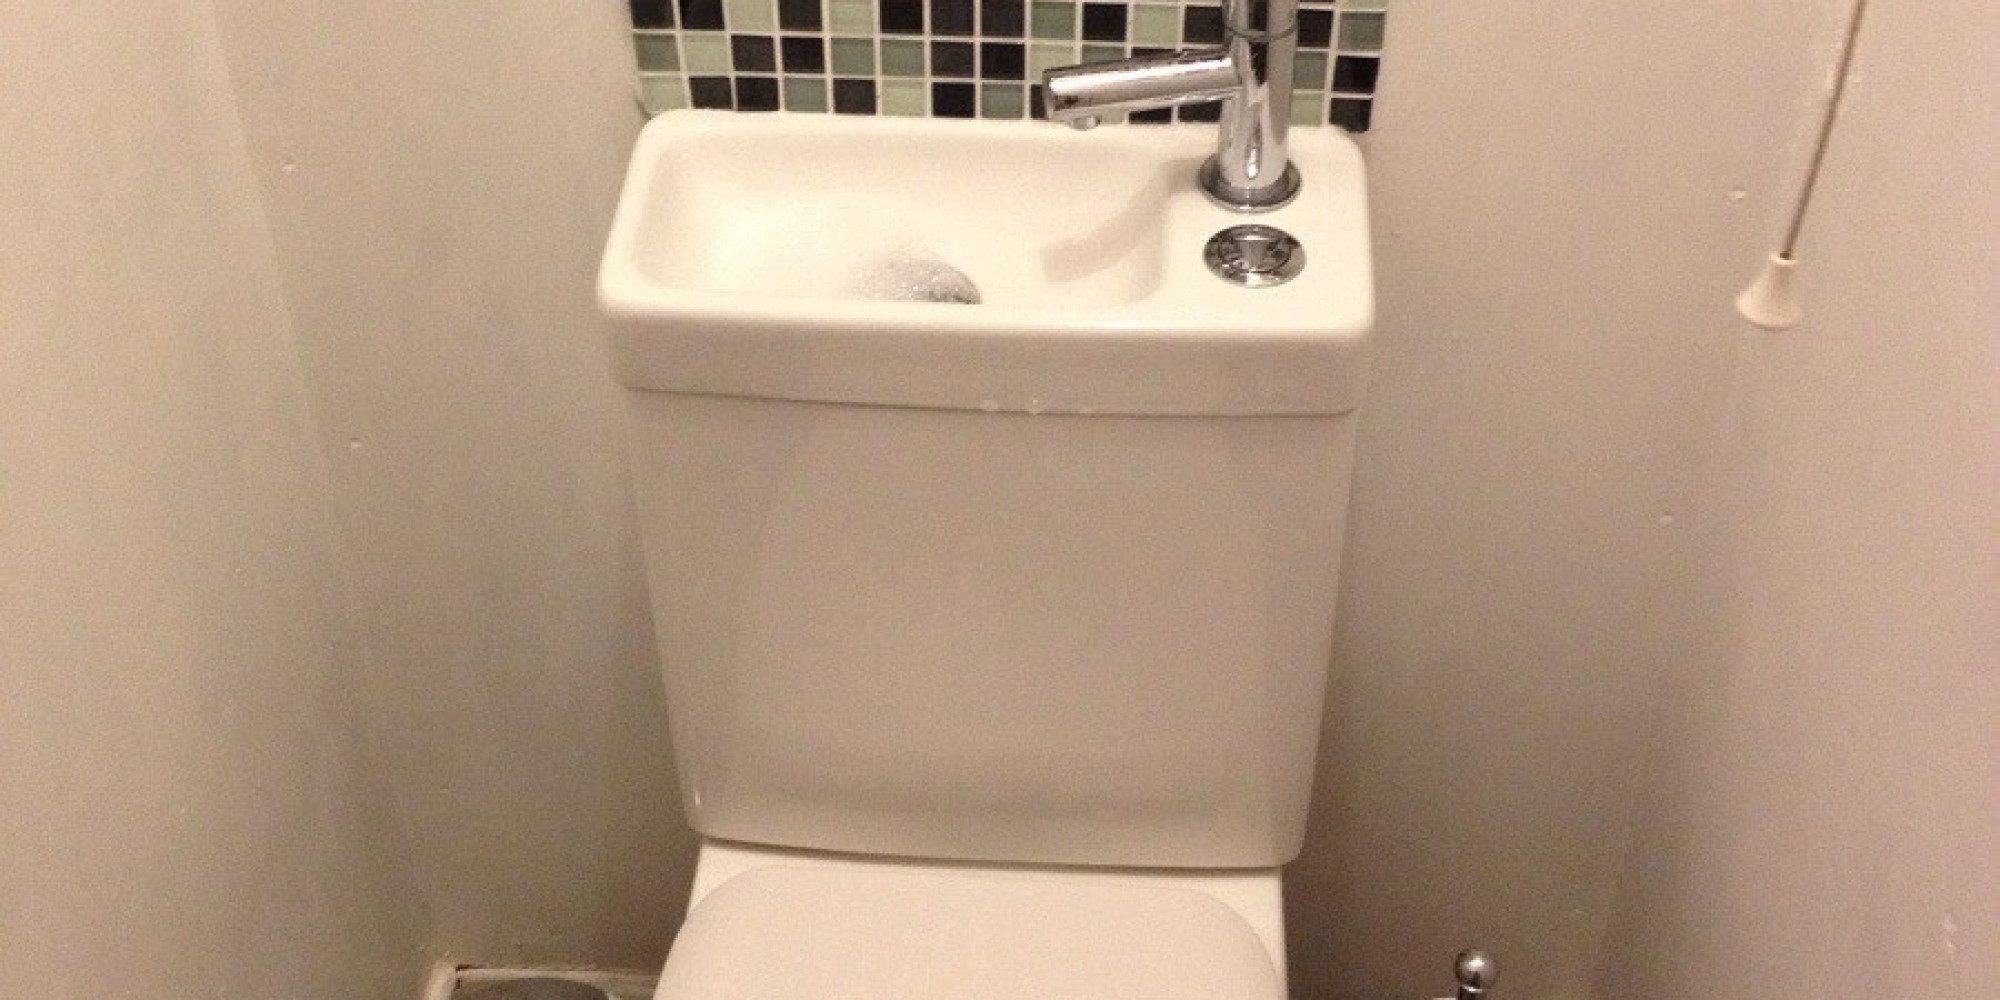 Sink On Toilet Is Ultimate Space Saver PHOTO HuffPost